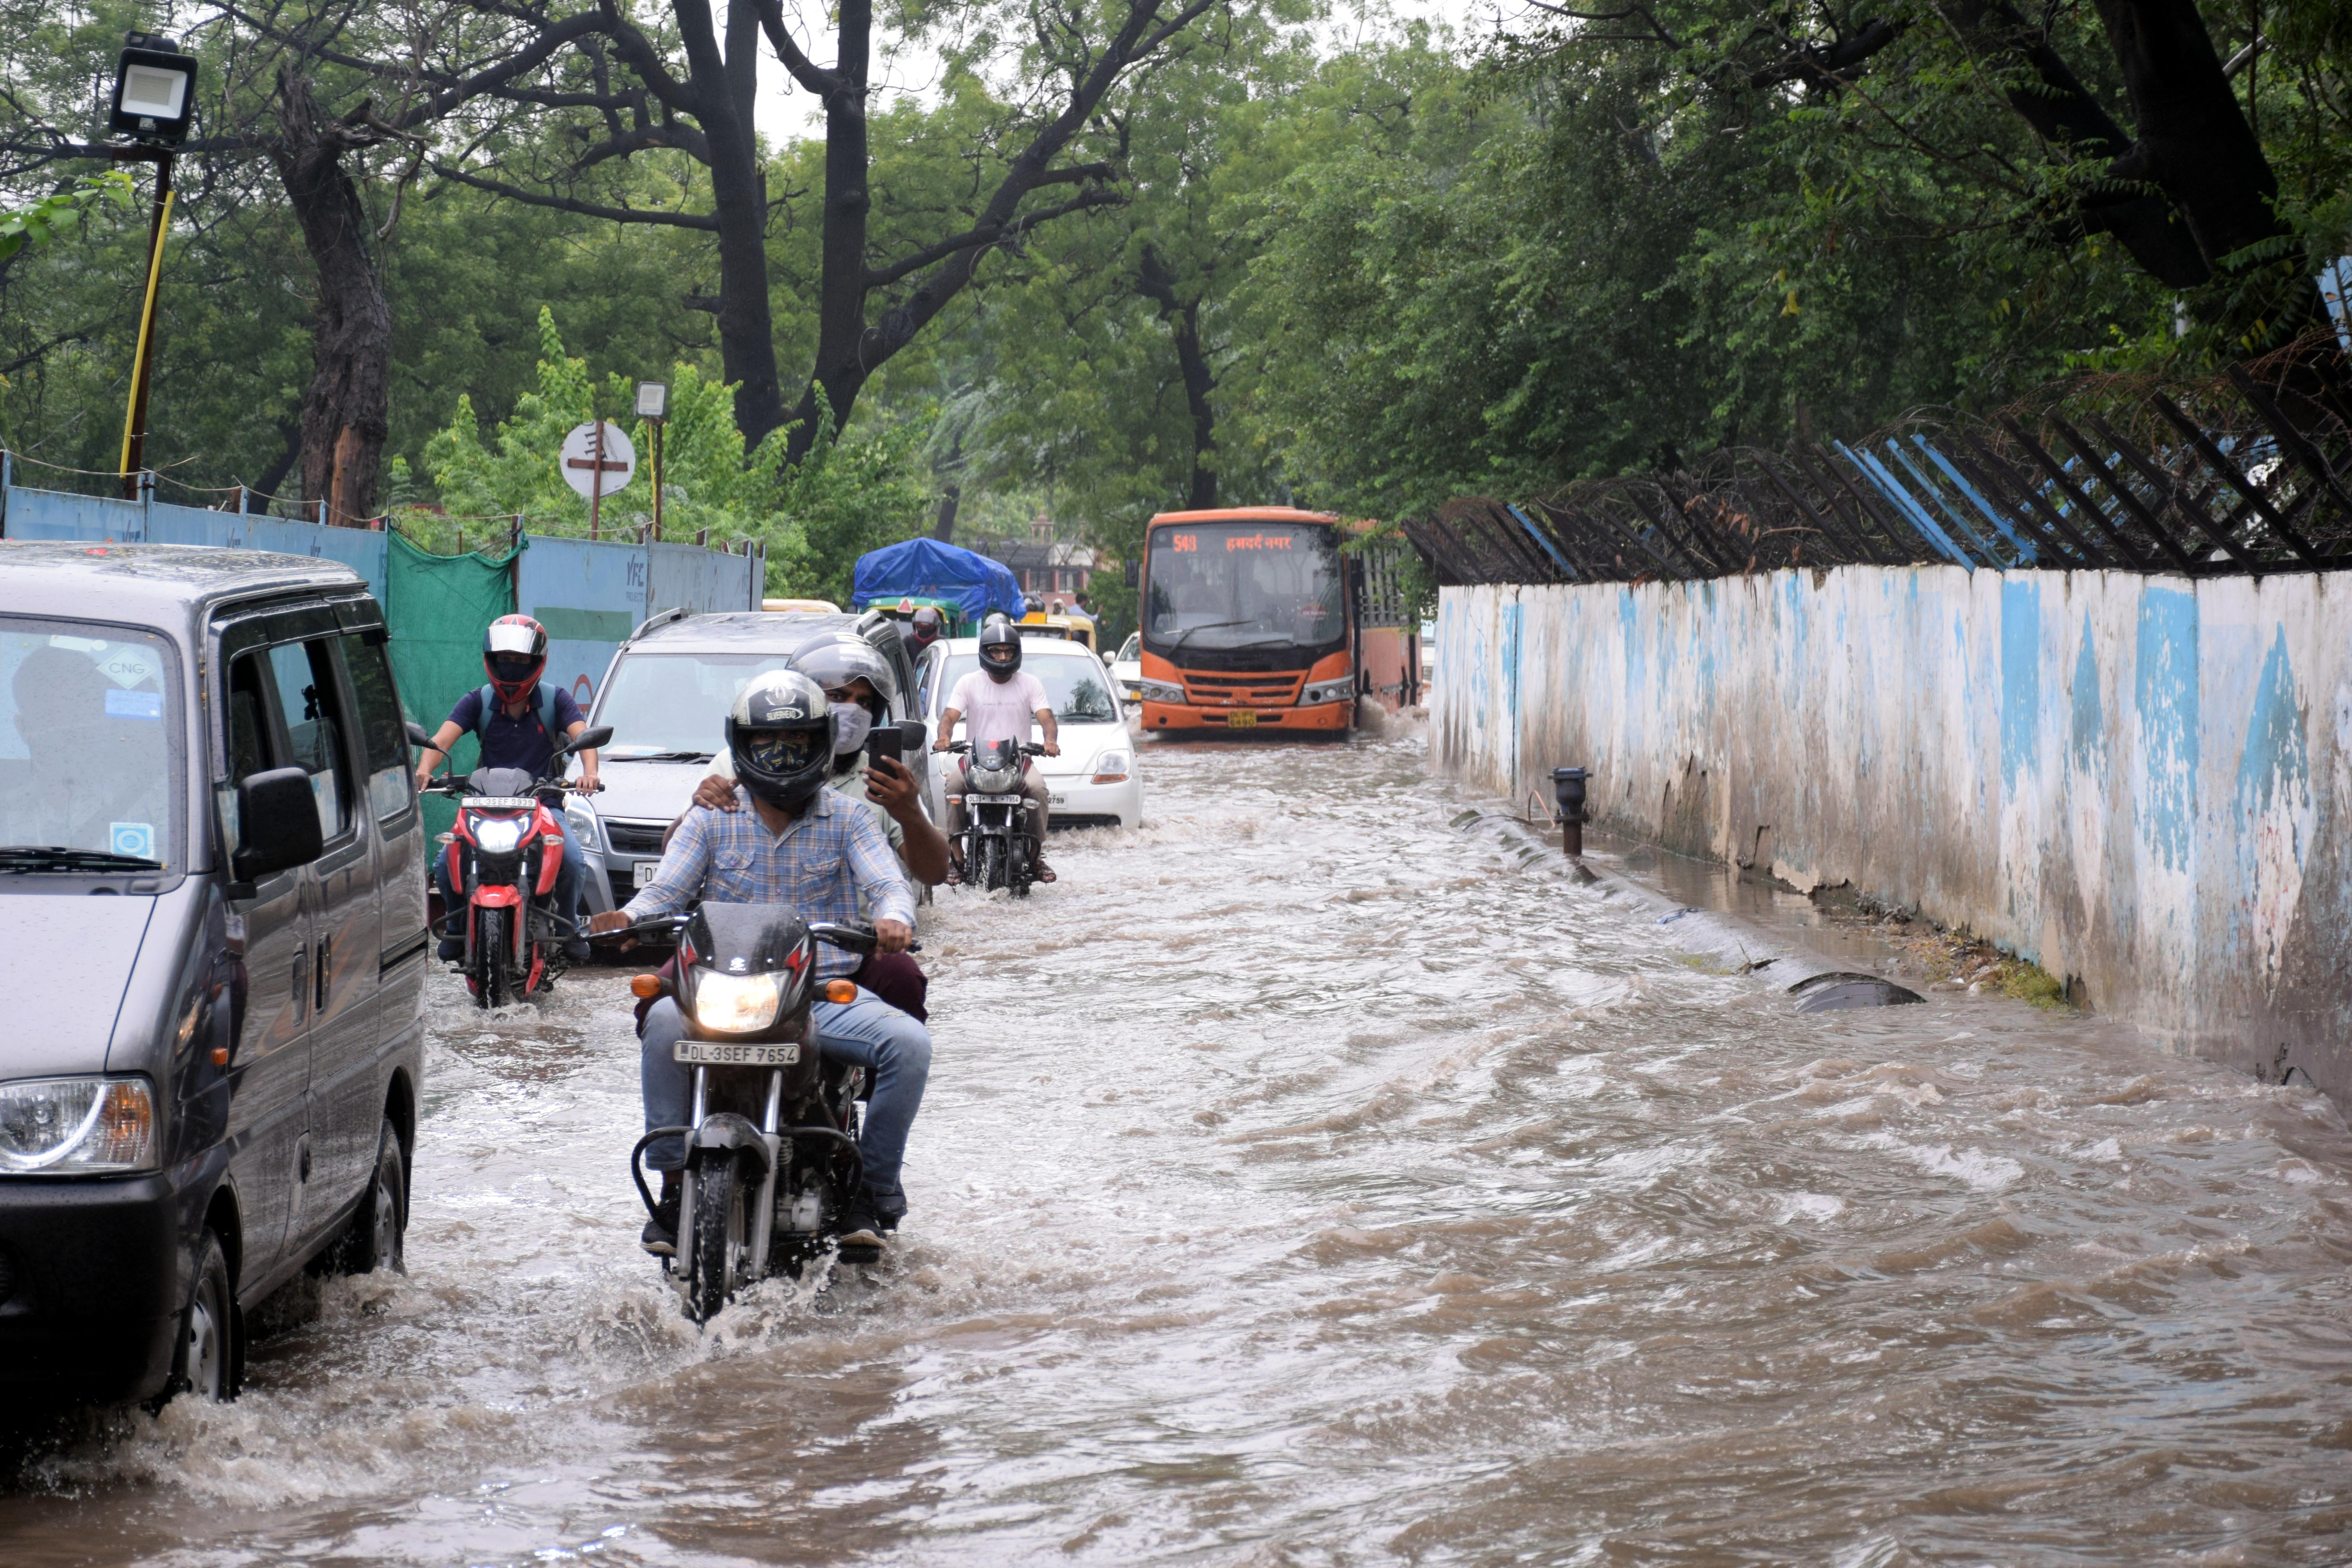 This image shows waterlogging at Pul Prahlad Pur, near Badarpur Border. The authorities had to shut traffic movement on the Pul Prahladpur underpass due to extensive waterlogging there.